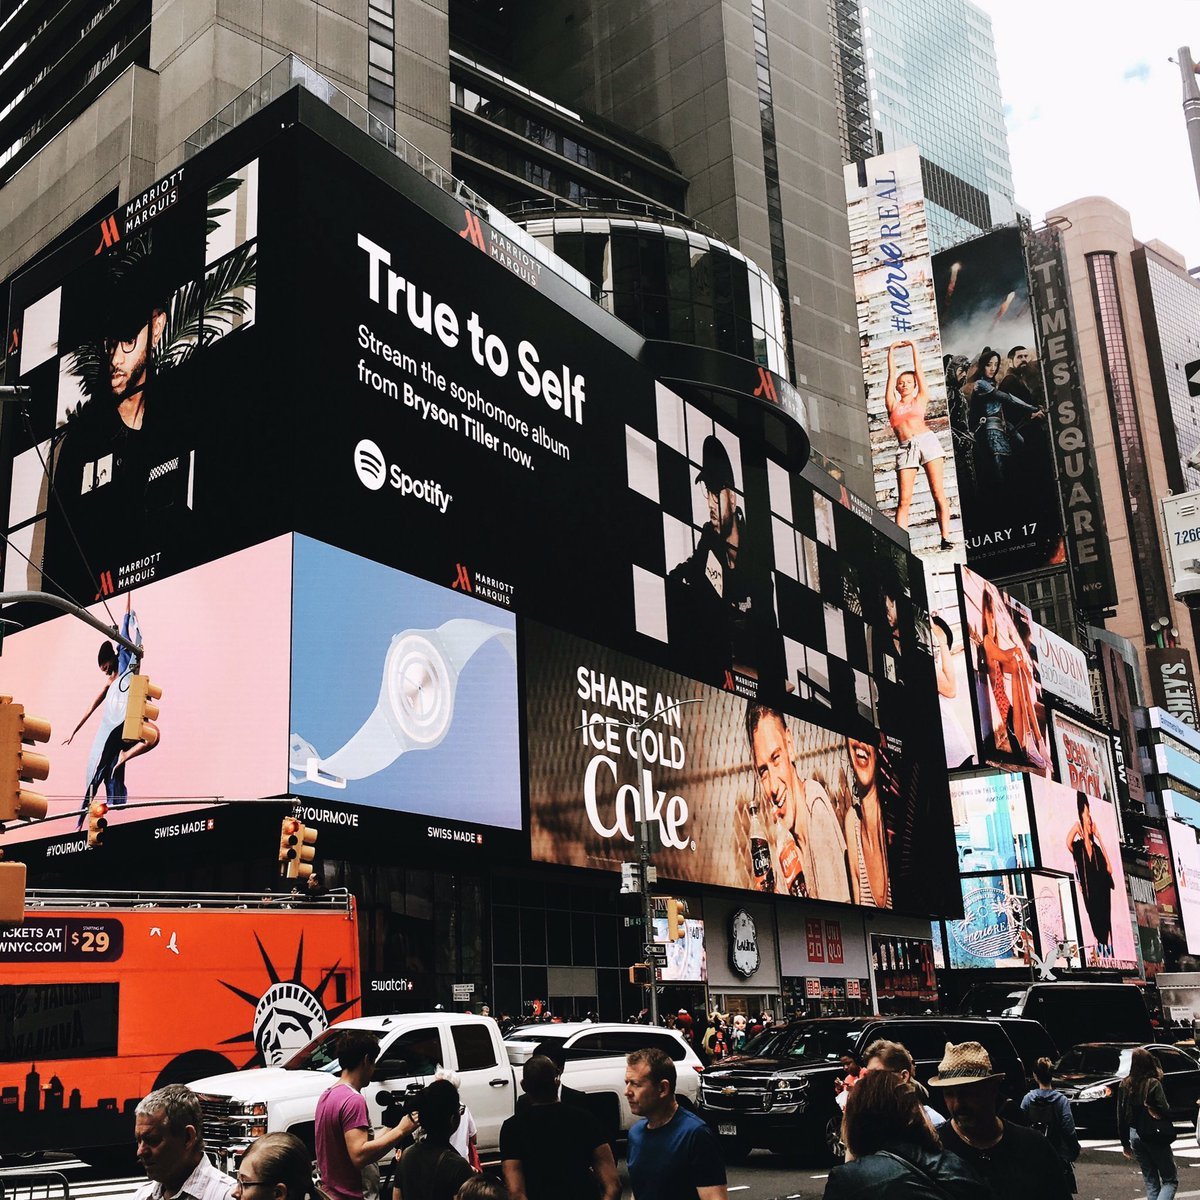 my photos in Time Square ! true to self, thx @Spotify ✔️